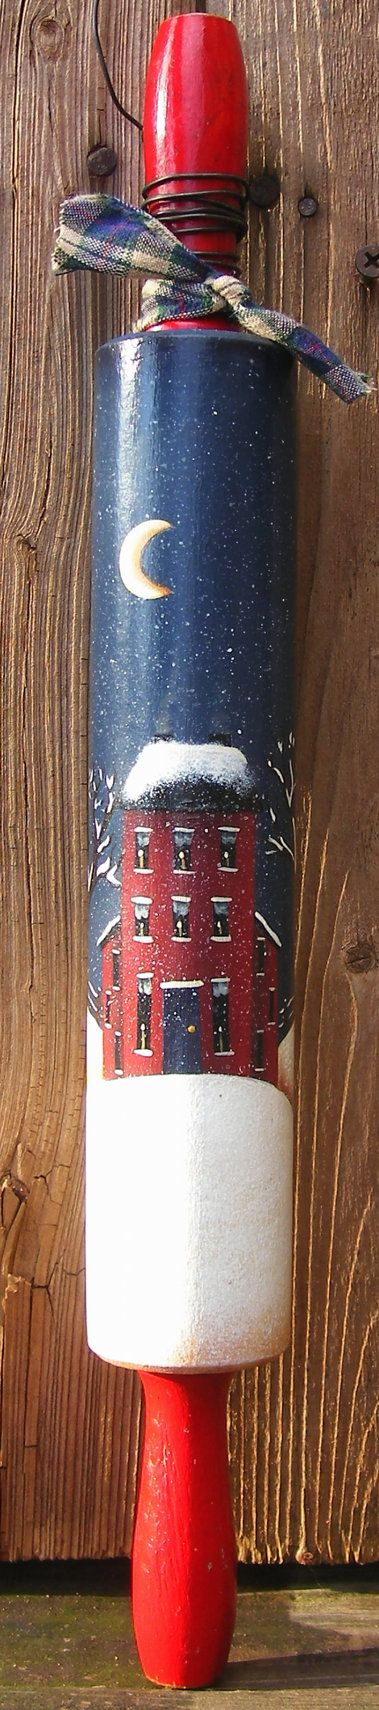 Hand Painted Saltbox Winter House on Vintage by PaintingByEileen, $8.00